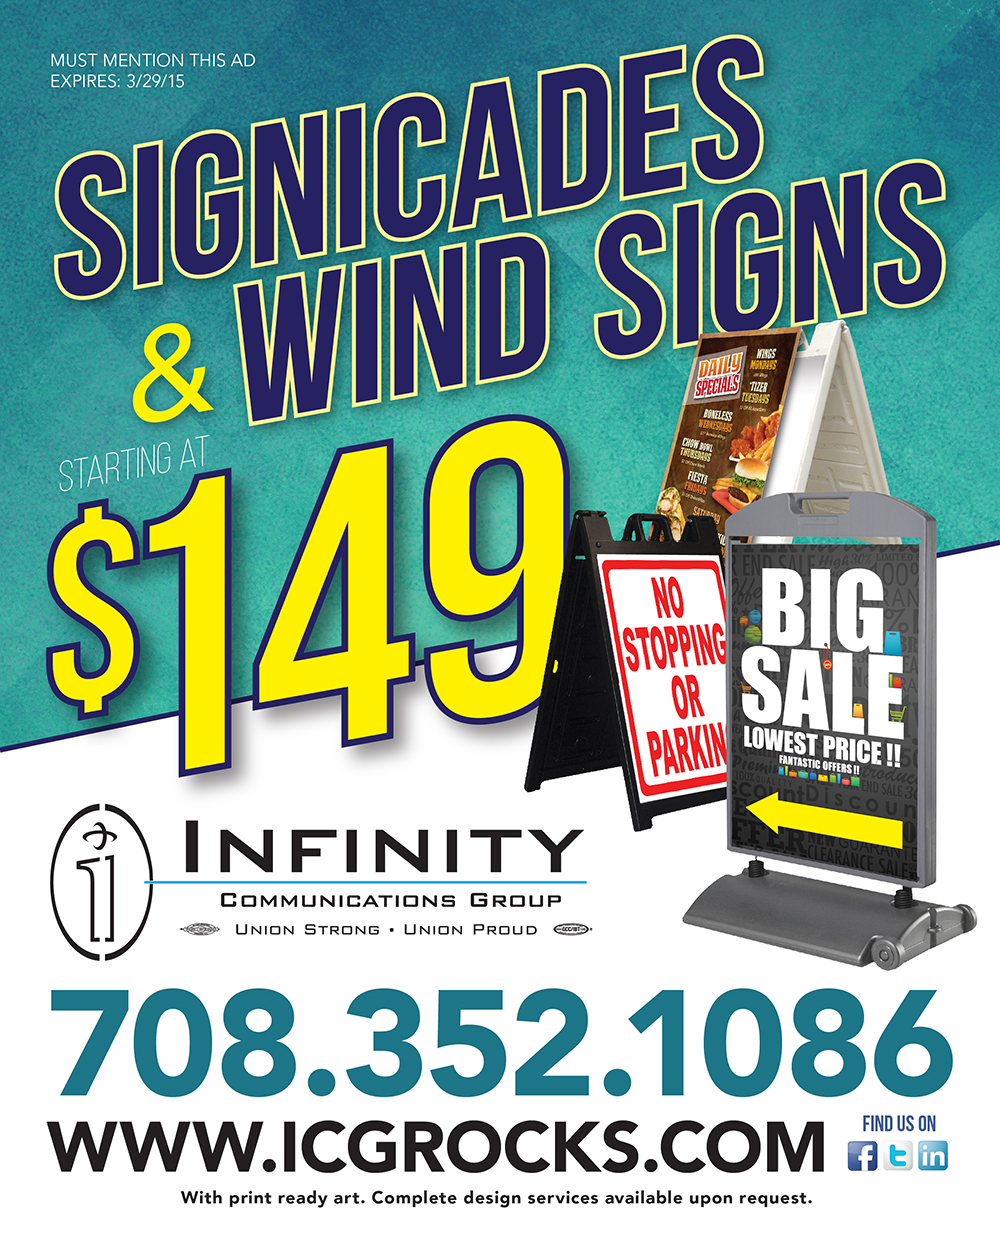 Signicades & Wind Signs starting at $149